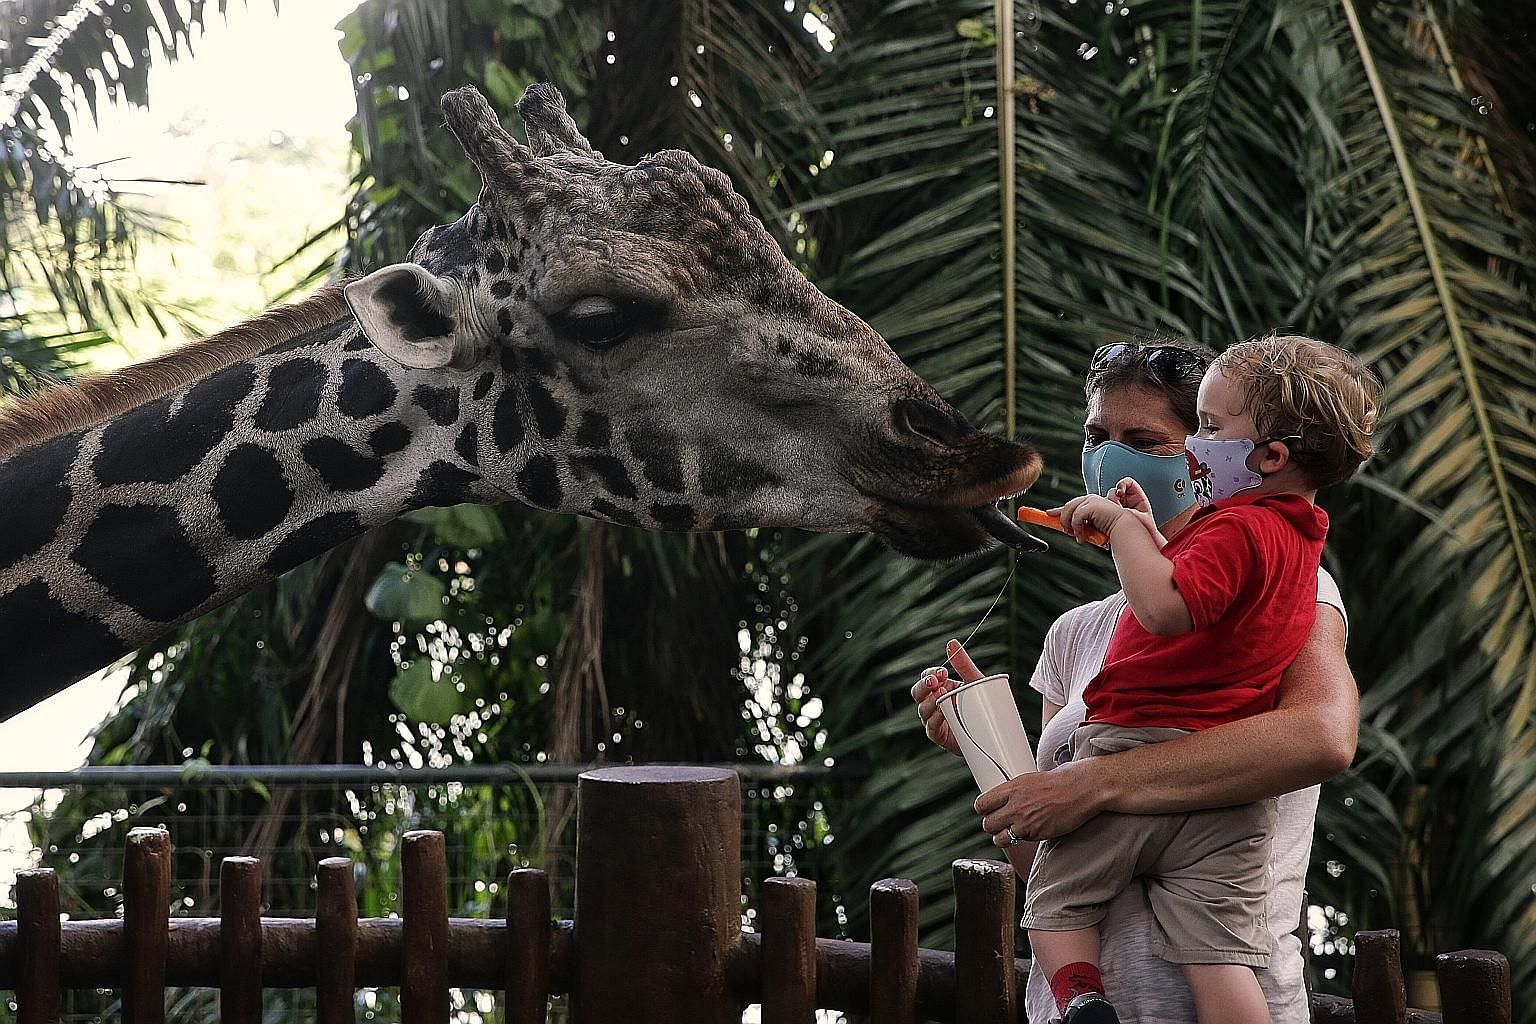 It's feeding time for Marco, a 16-year-old Baringo giraffe who gets a treat from a young visitor at at the Singapore Zoo. After nearly three months of closure since the start of the circuit breaker in April, the zoo - along with the River Safari and